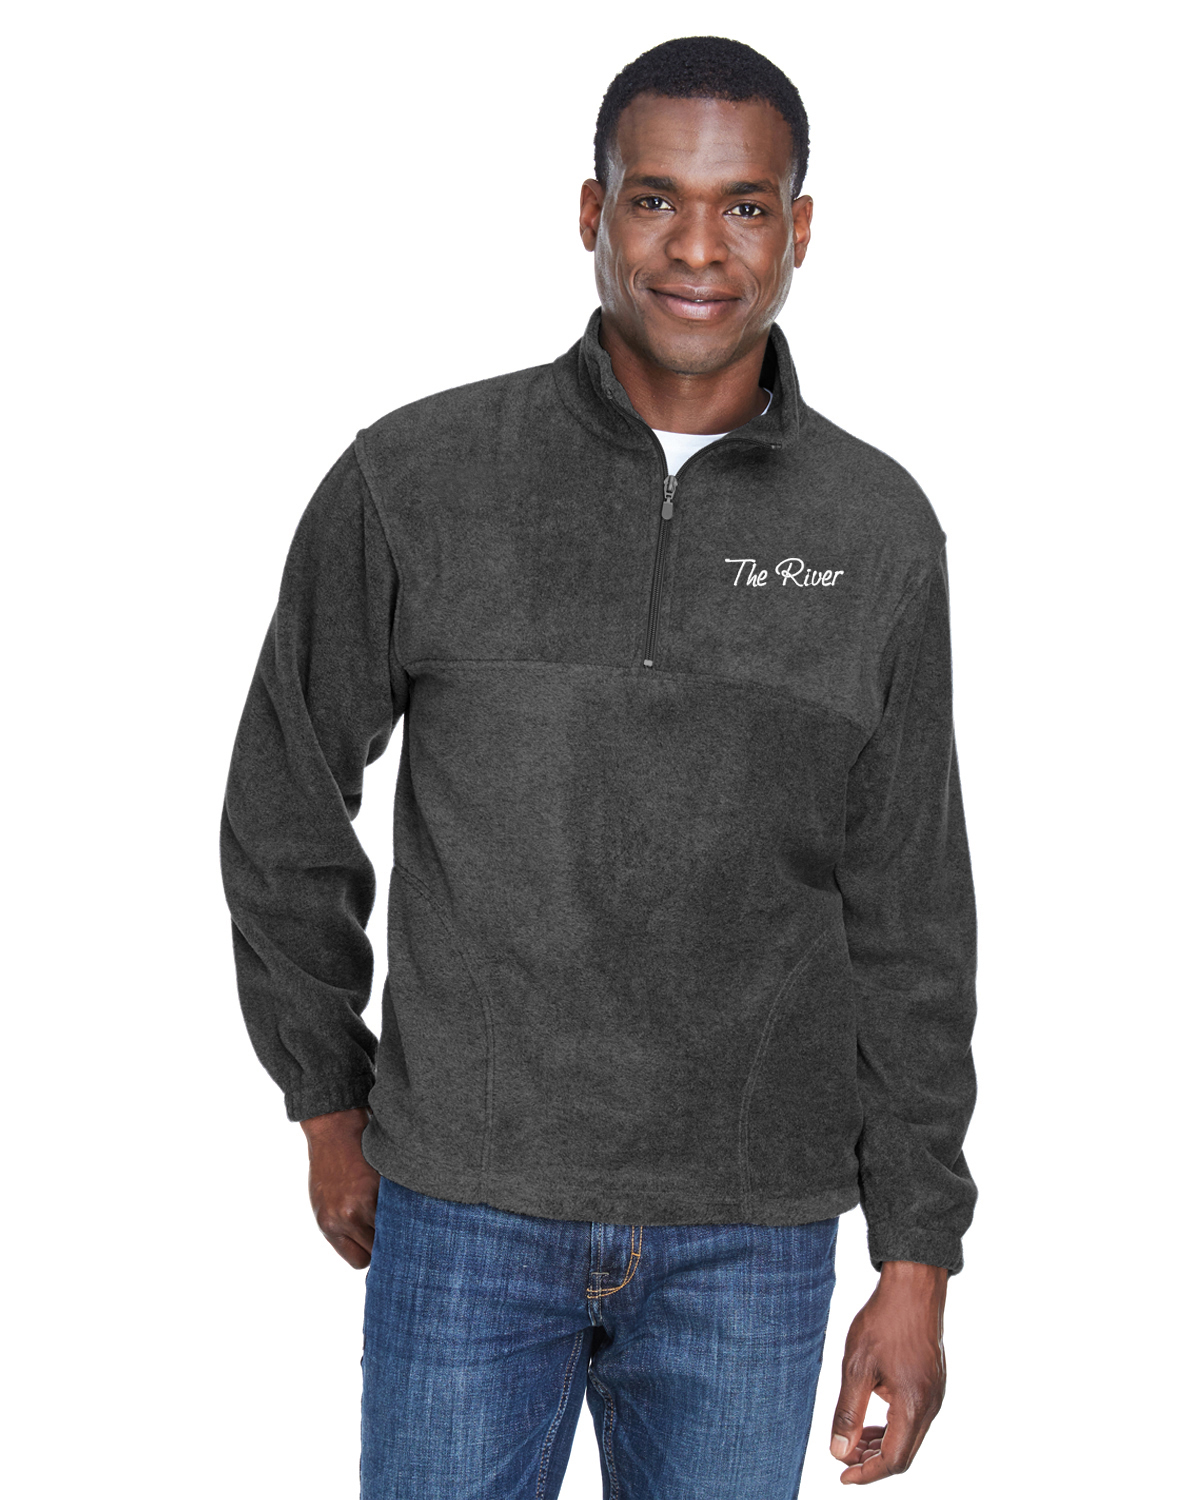 M980 Charcoal Harriton Adult 8 oz. Quarter-Zip Fleece Pullover Charcoal